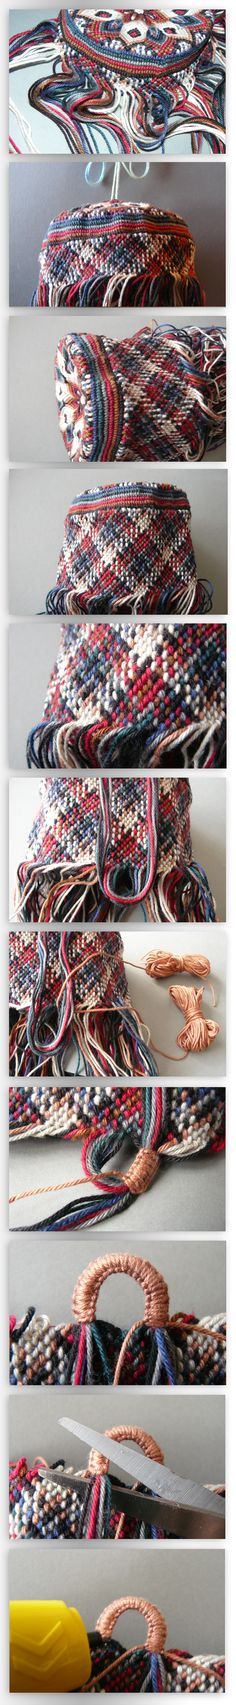 Pouch Tutorial Part IV (Body and Loops) by ~nimuae on deviantART